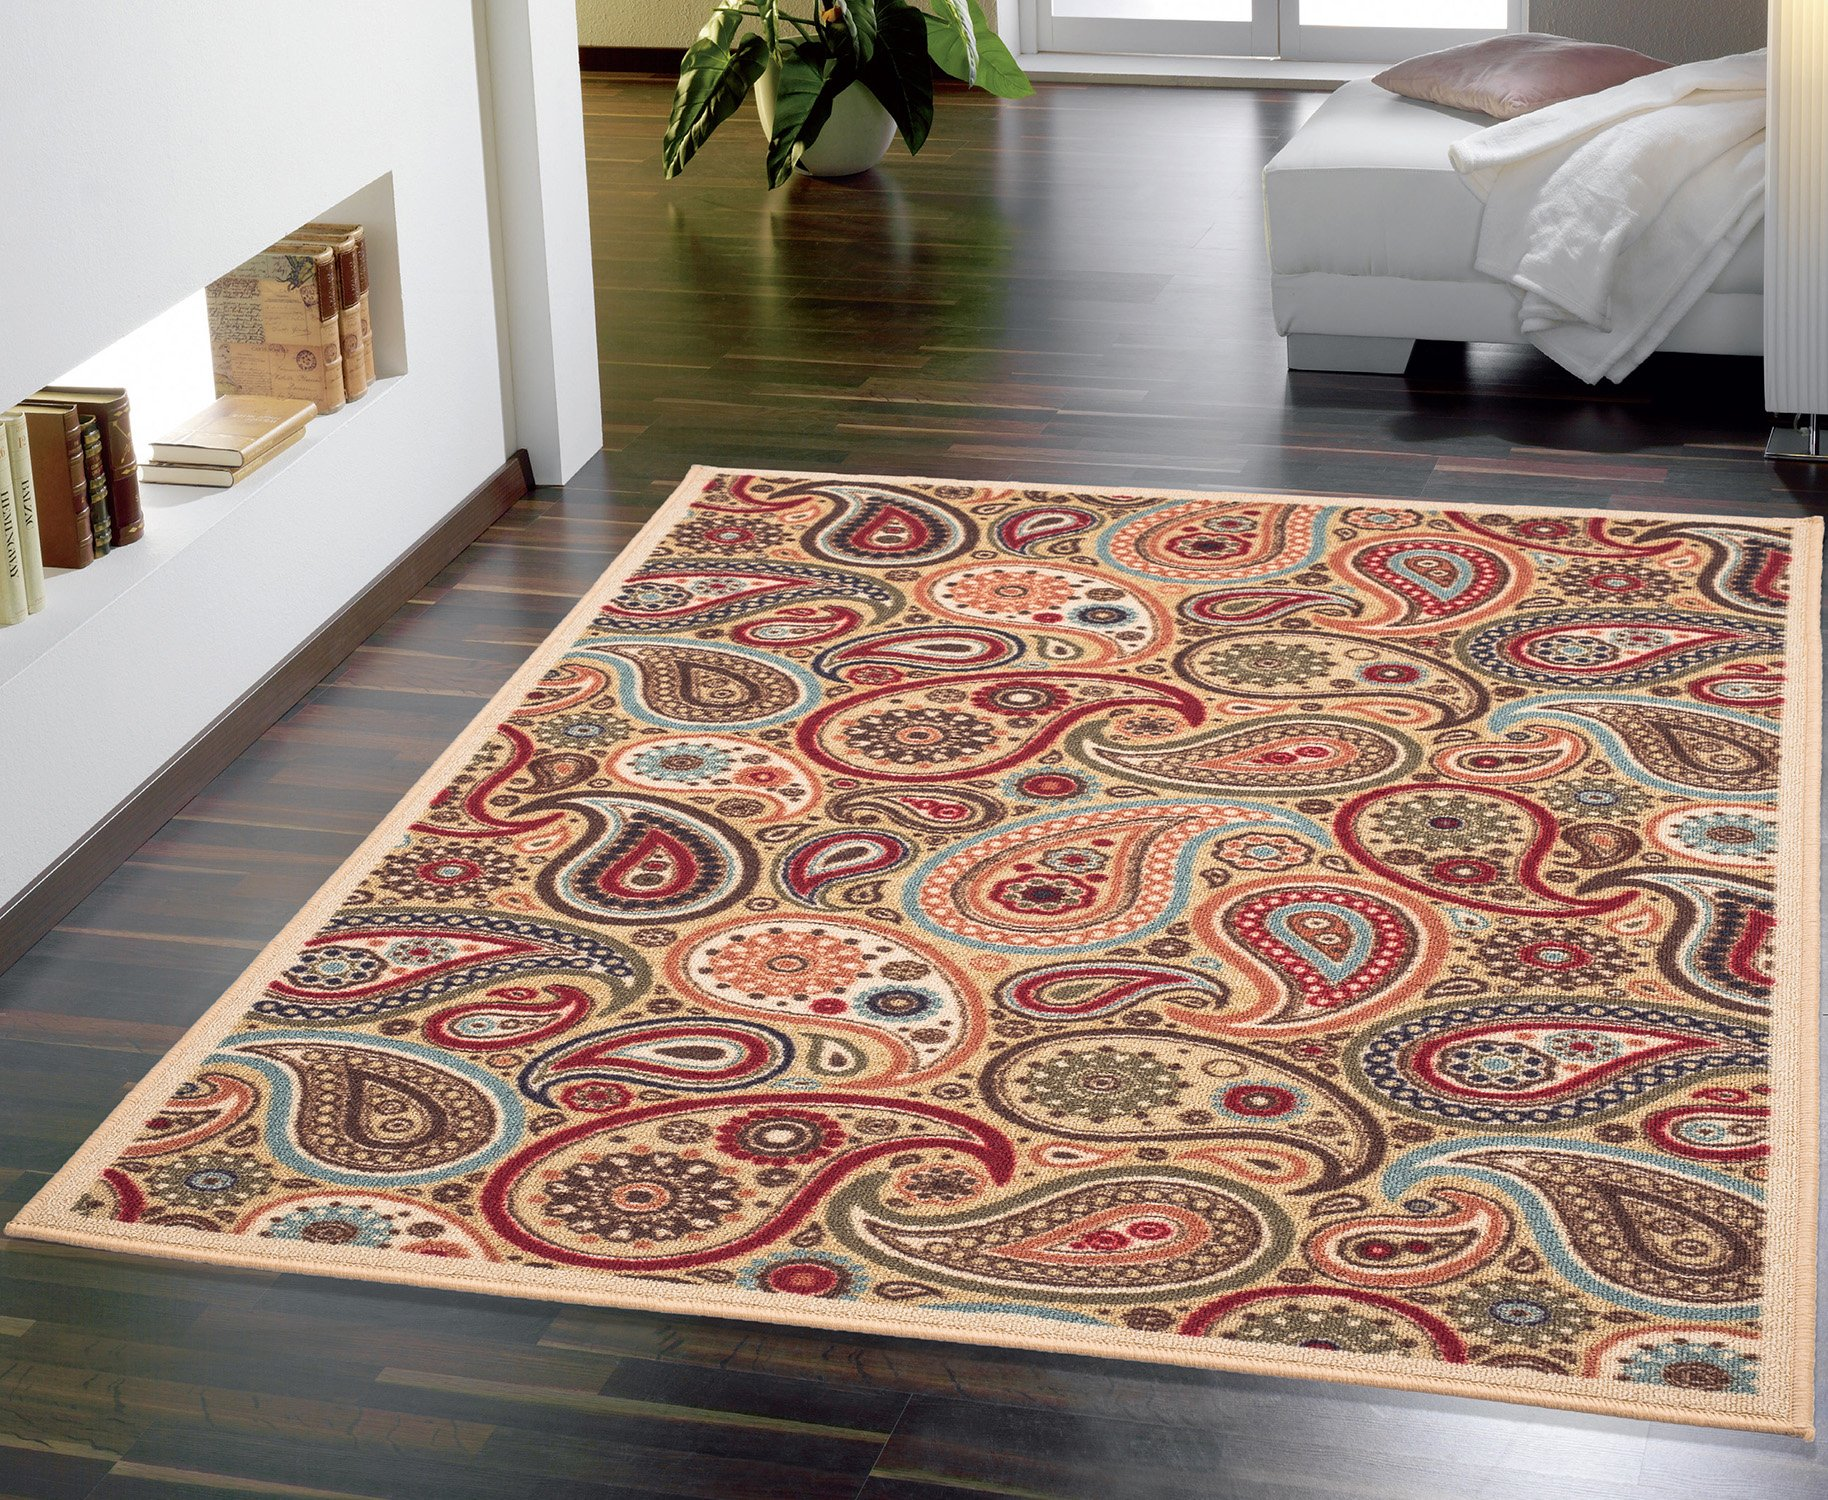 Ottomanson Ottohome Collection Contemporary Paisley Design Non-Skid (Non-Slip) Rubber Backing Modern Area Rug, 8'2 X 9'10, Beige